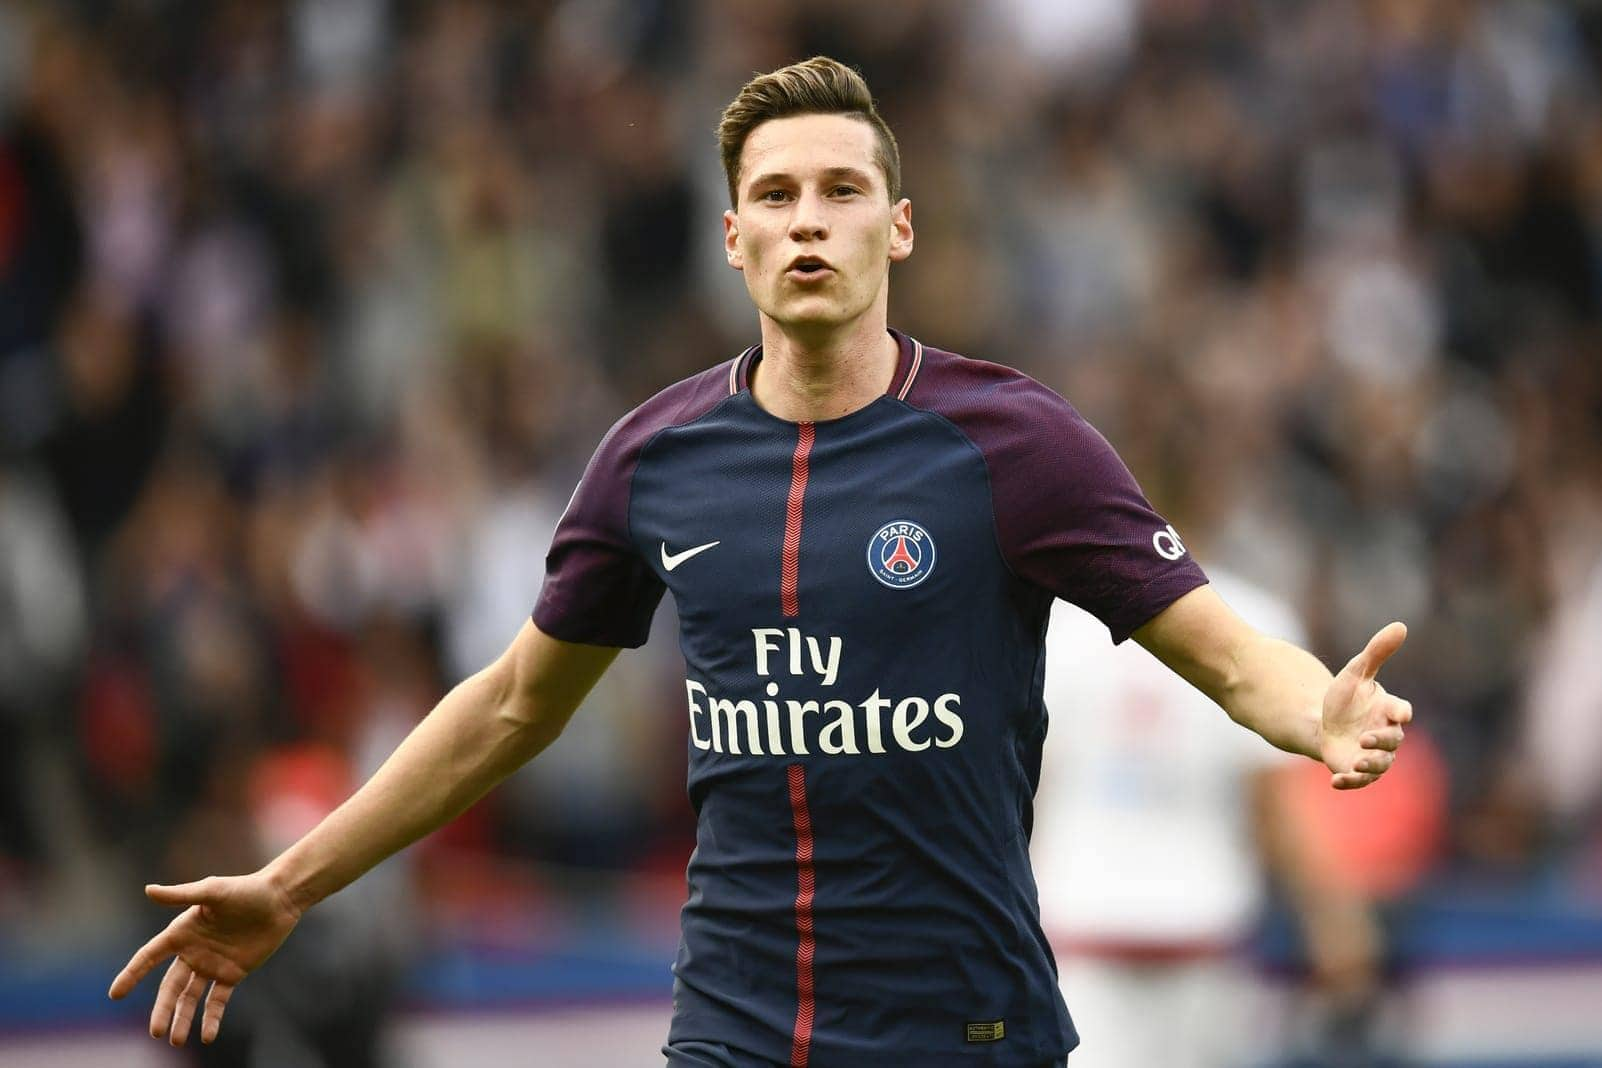 Julian Draxler FC Schalke 04 Paris Saint-Germain